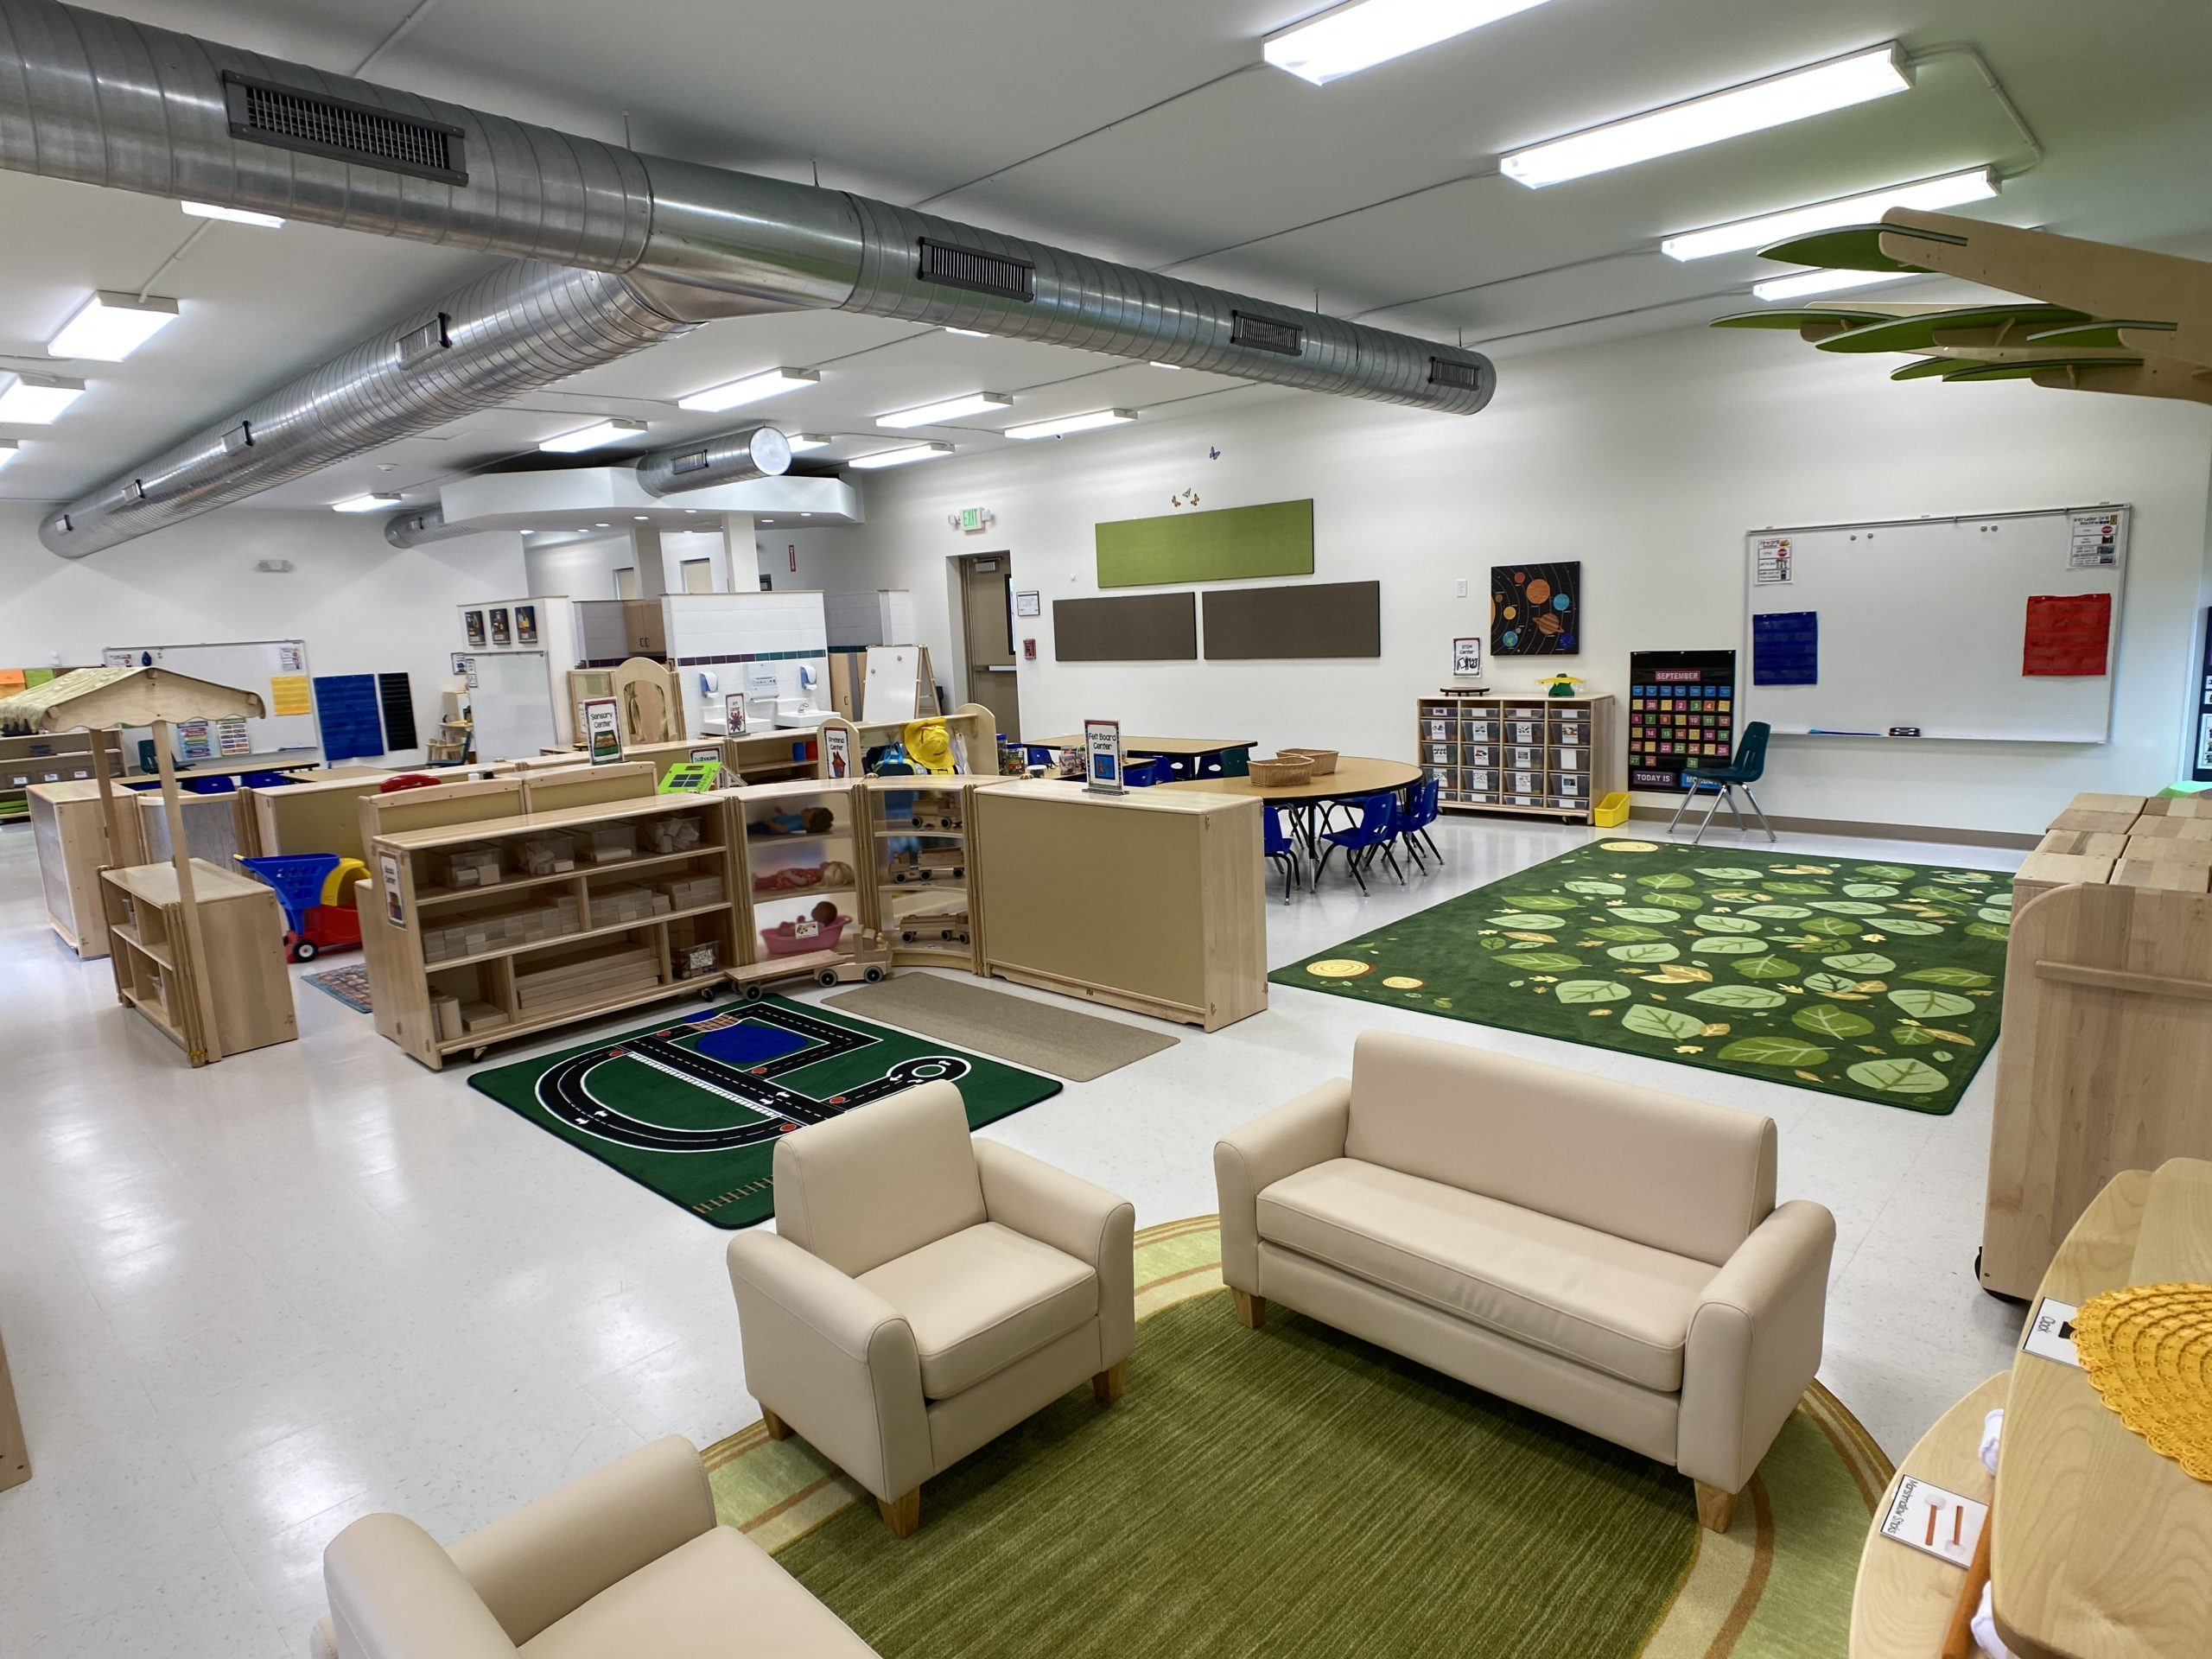 children's learning area - whole space